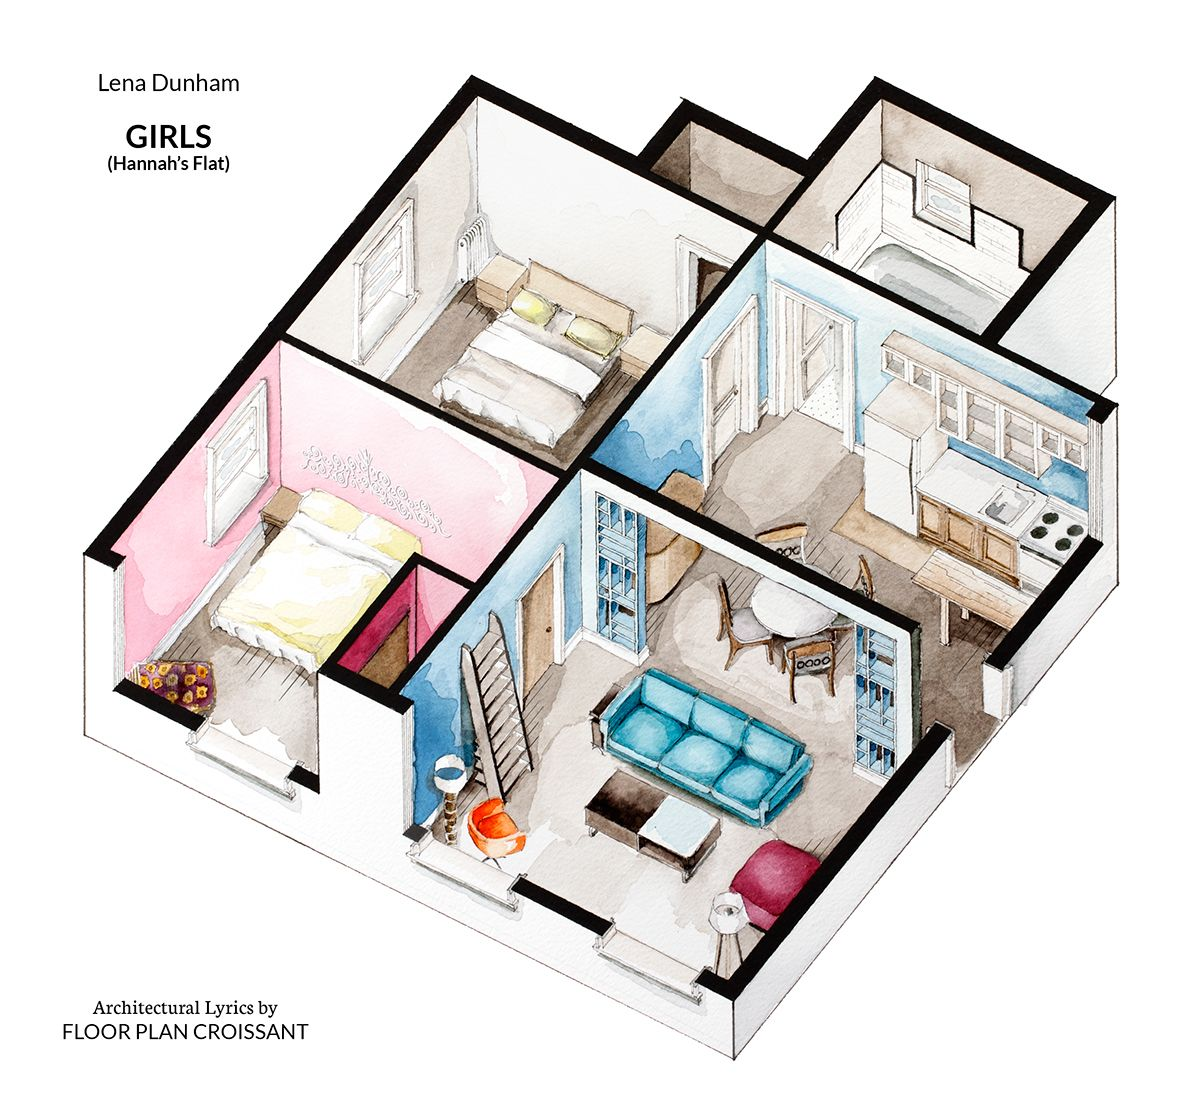 Attractive Watercolor Isometric Floor Plan Of Hannah Horvathu0027s Apartment In HBO Show  Girls. More Here: Https://www.facebook.com/FPlanCroissant